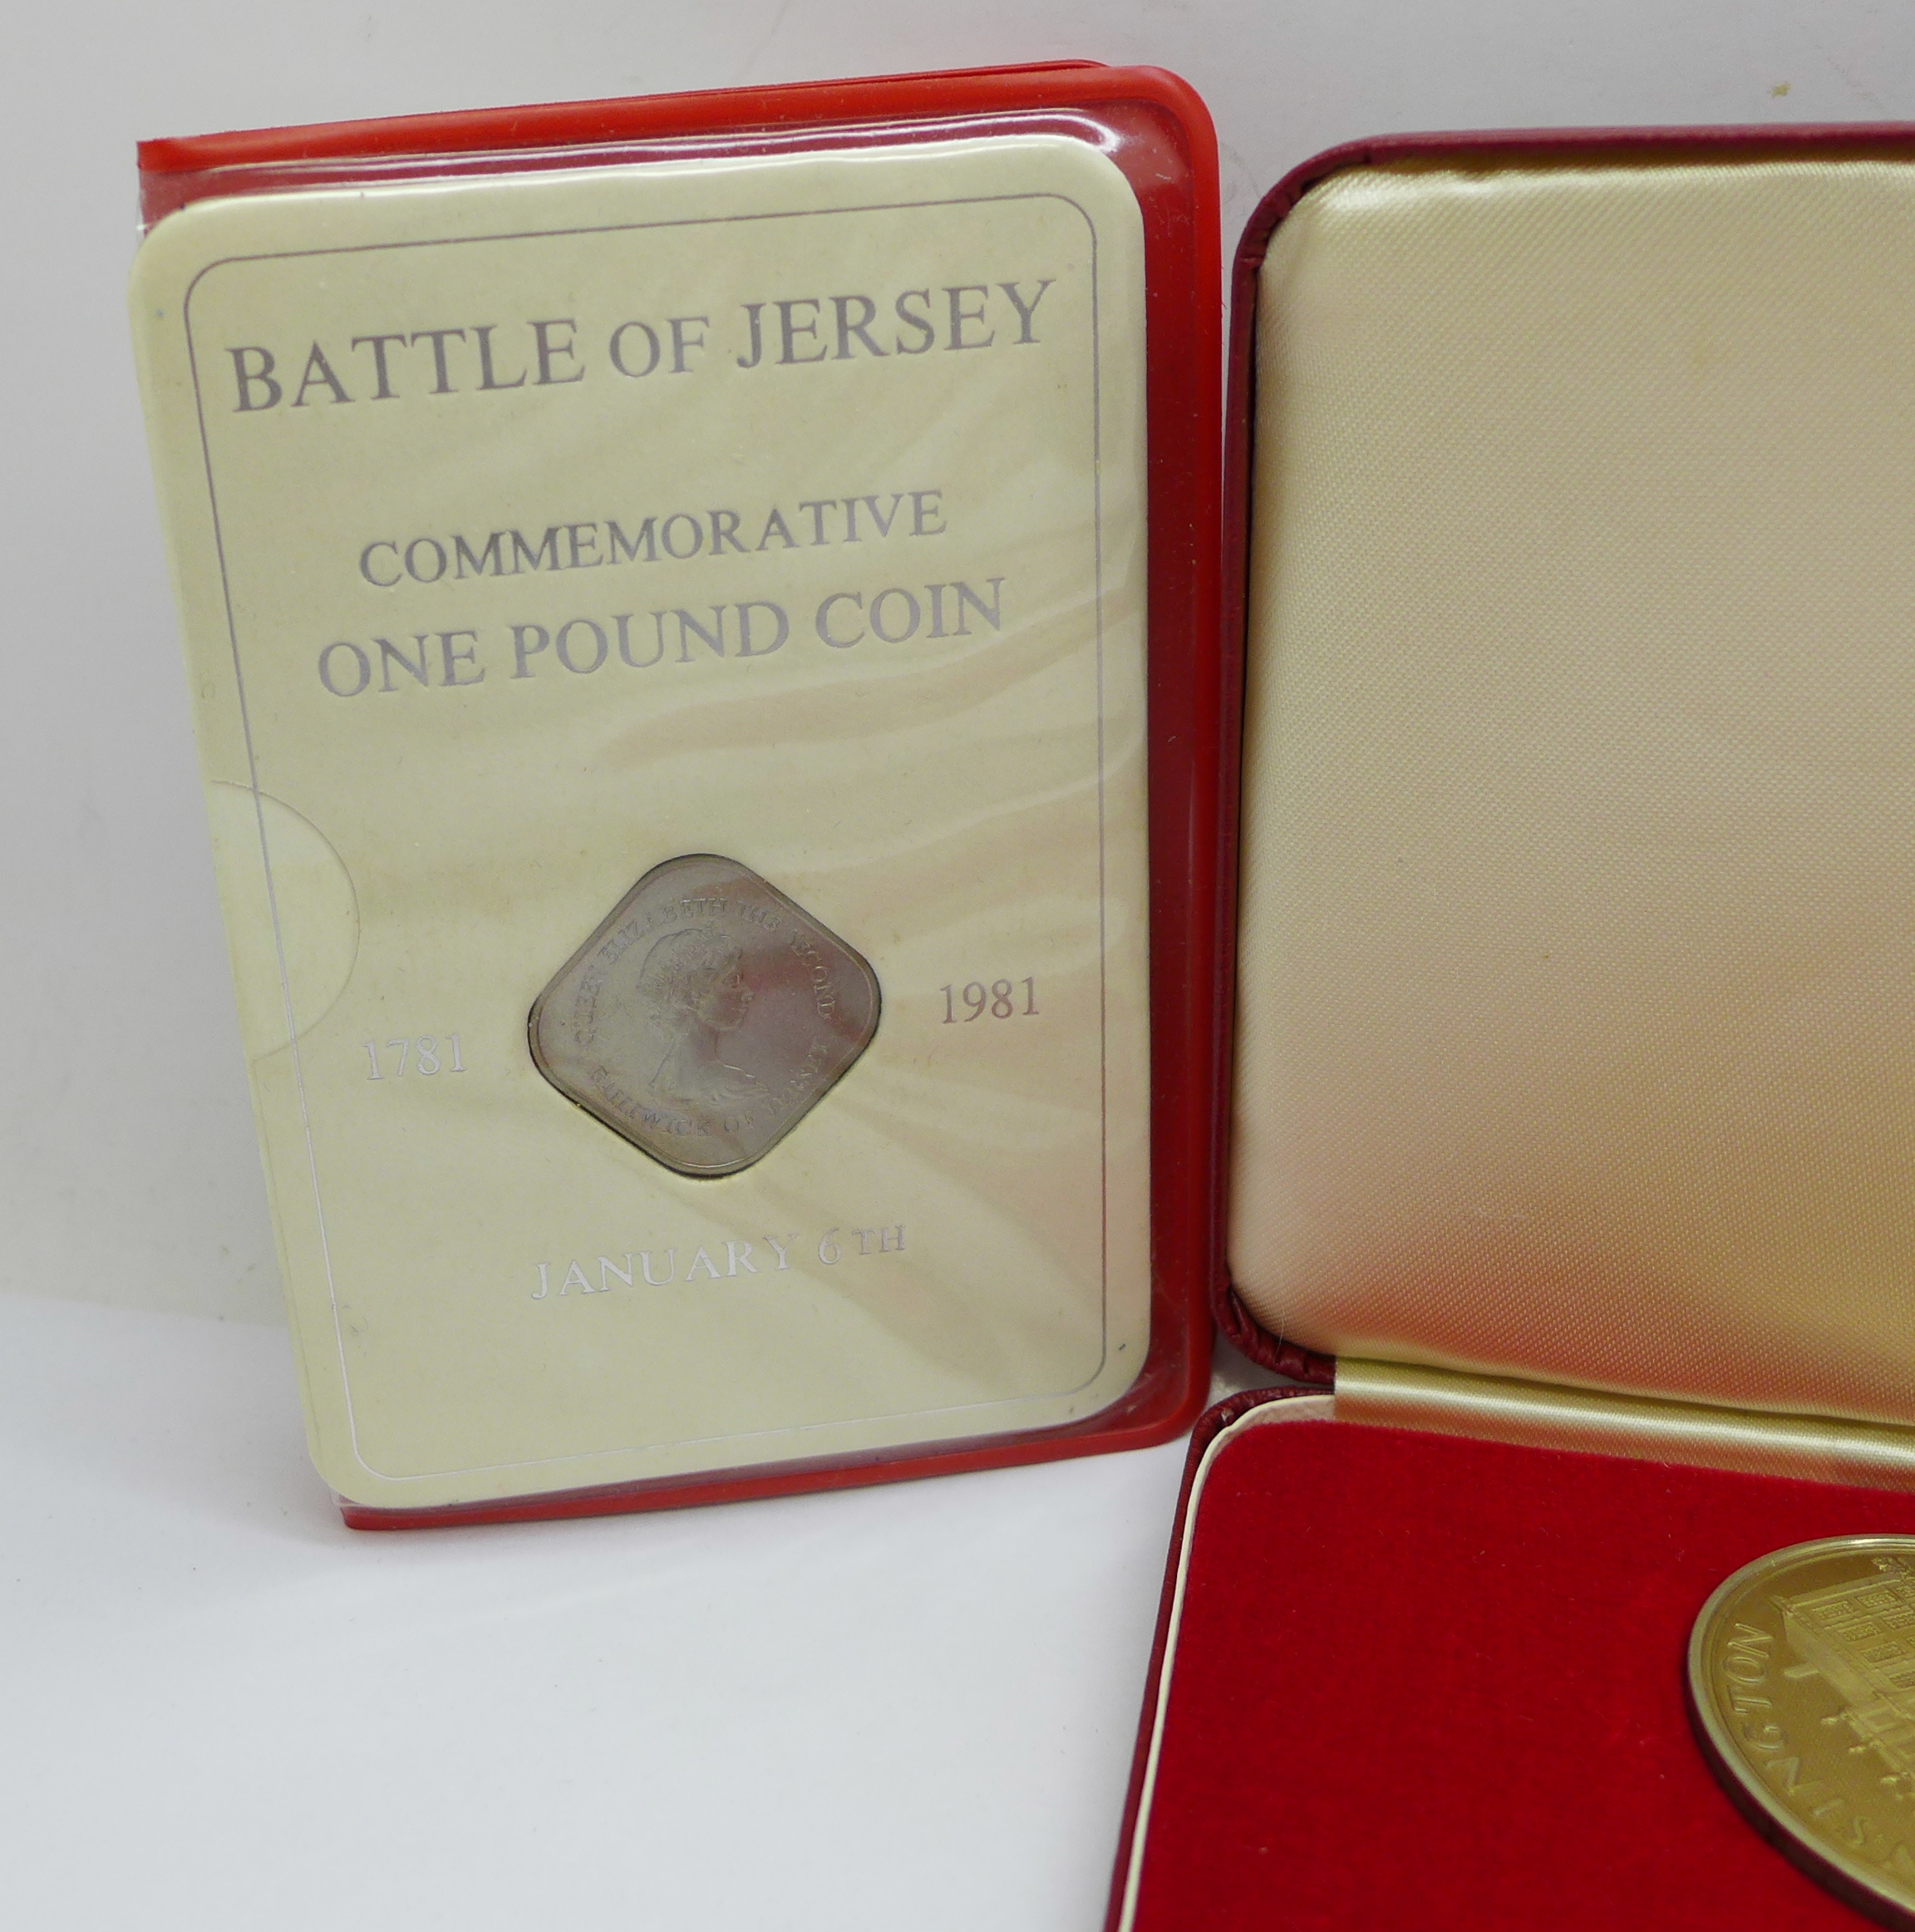 A Tower Mint limited edition nickel silver 5-coin set, cased, a 1996 United States mint proof set, - Image 2 of 5